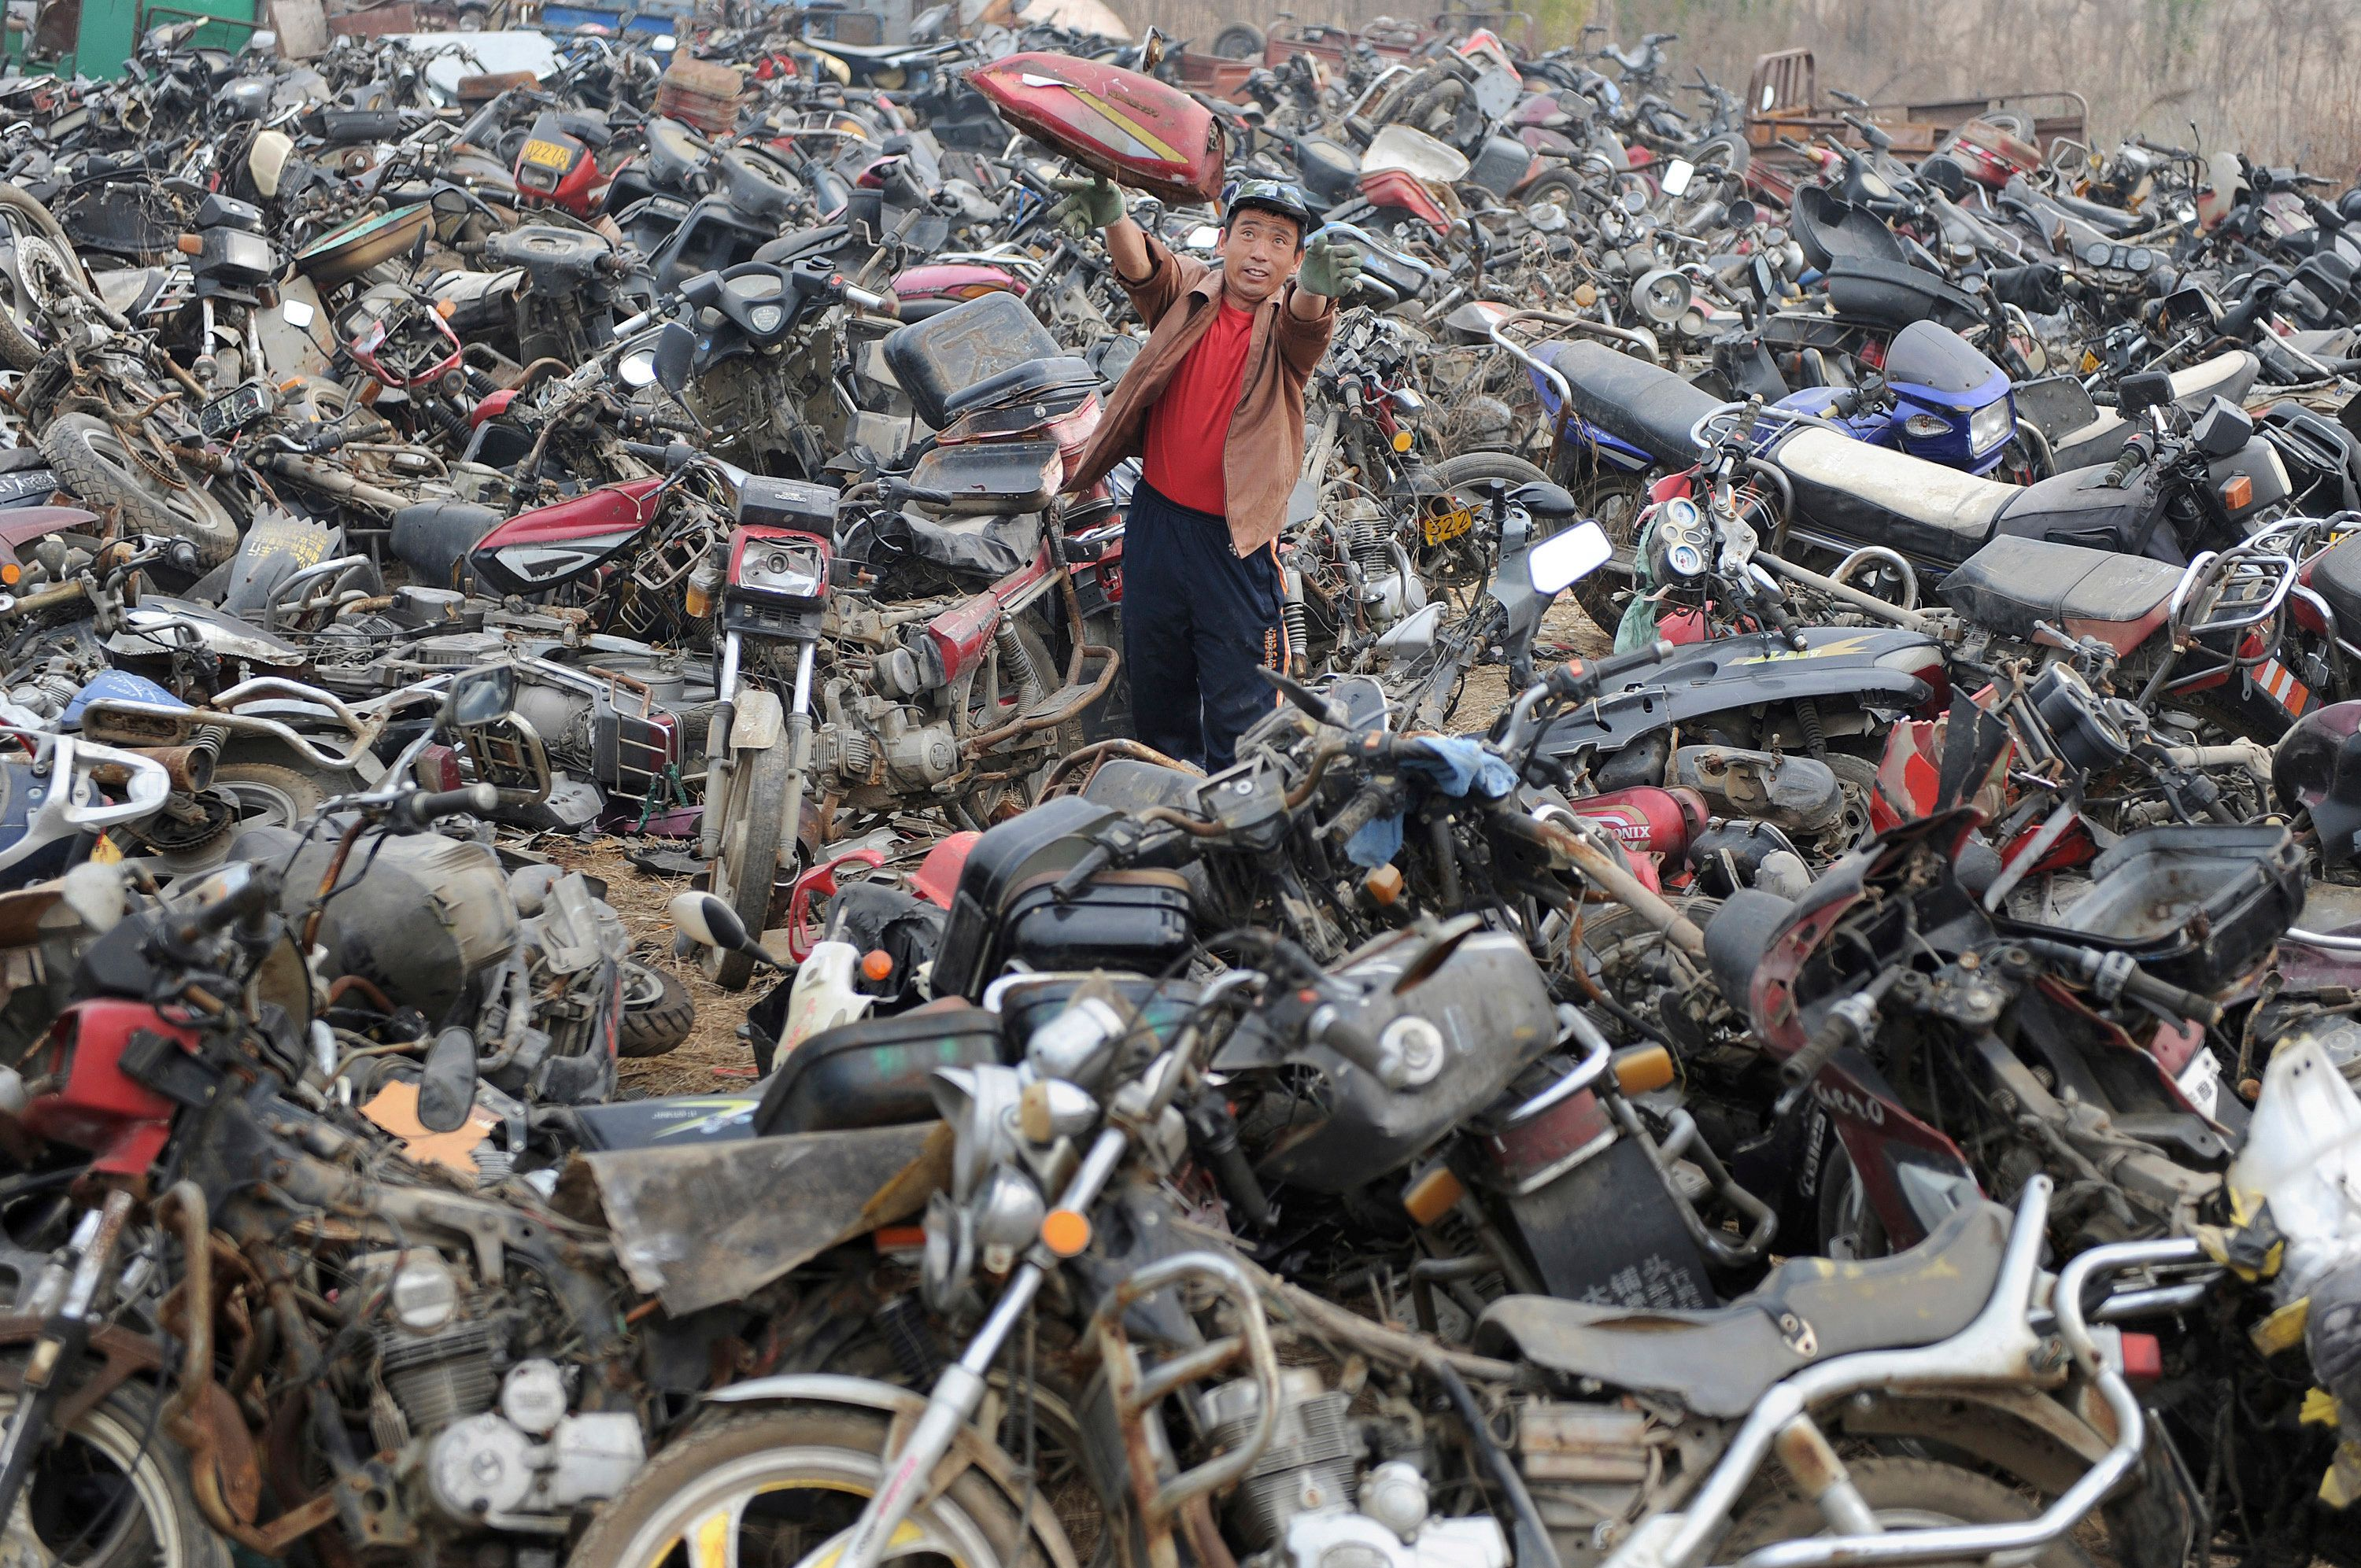 A labourer disassembles motorcycles at a recycling factory in Hefei, Anhui province, November 8, 2009. Hefei will completely ban all motorbikes from its downtown area to curb pollution, local media reported. REUTERS/Jianan Yu (CHINA ENVIRONMENT BUSINESS)